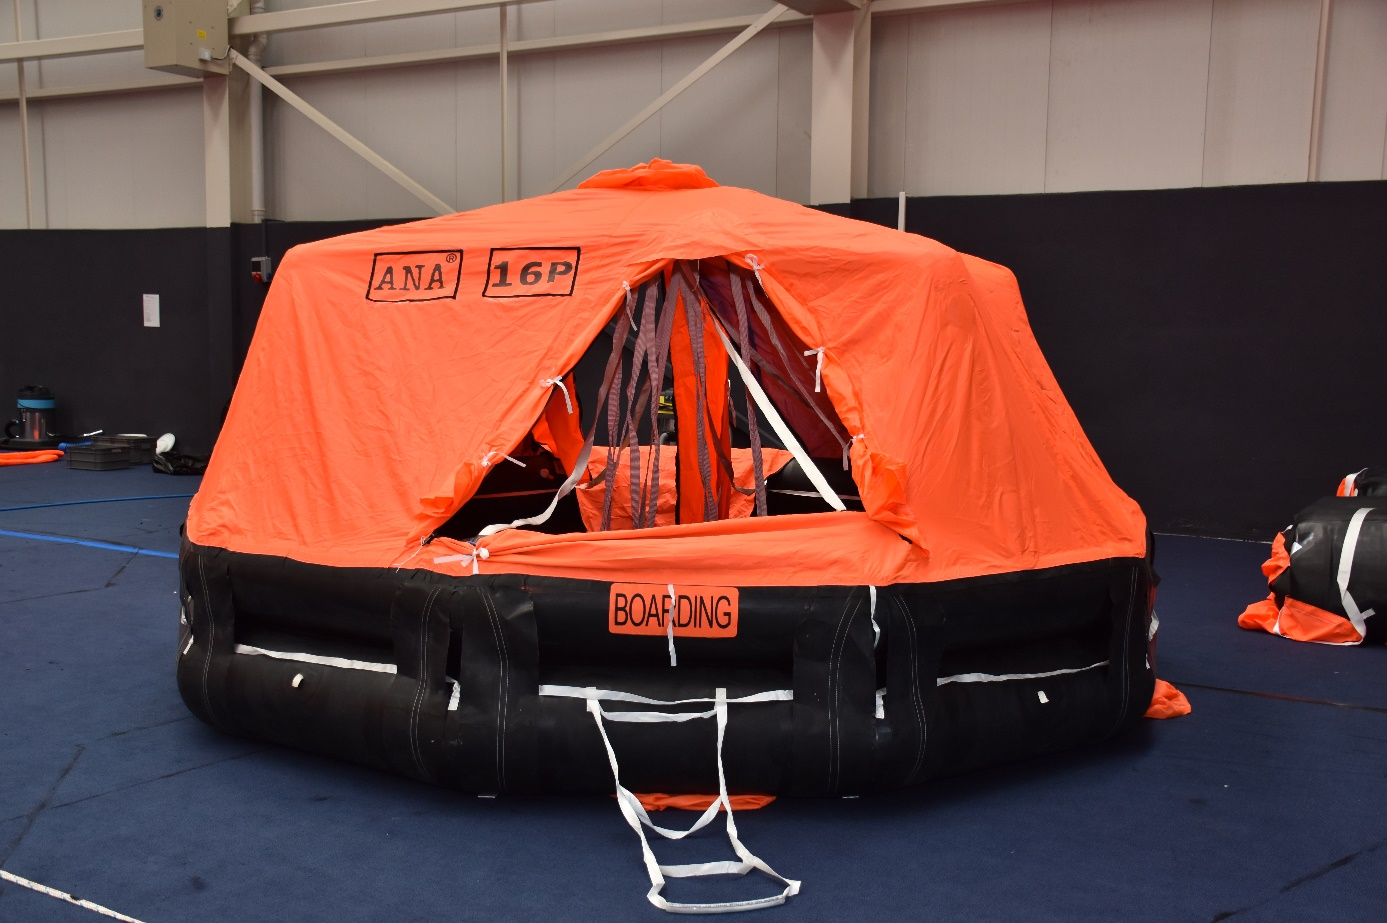 Akana_Marine_Technology_ANA_D_Liferaft